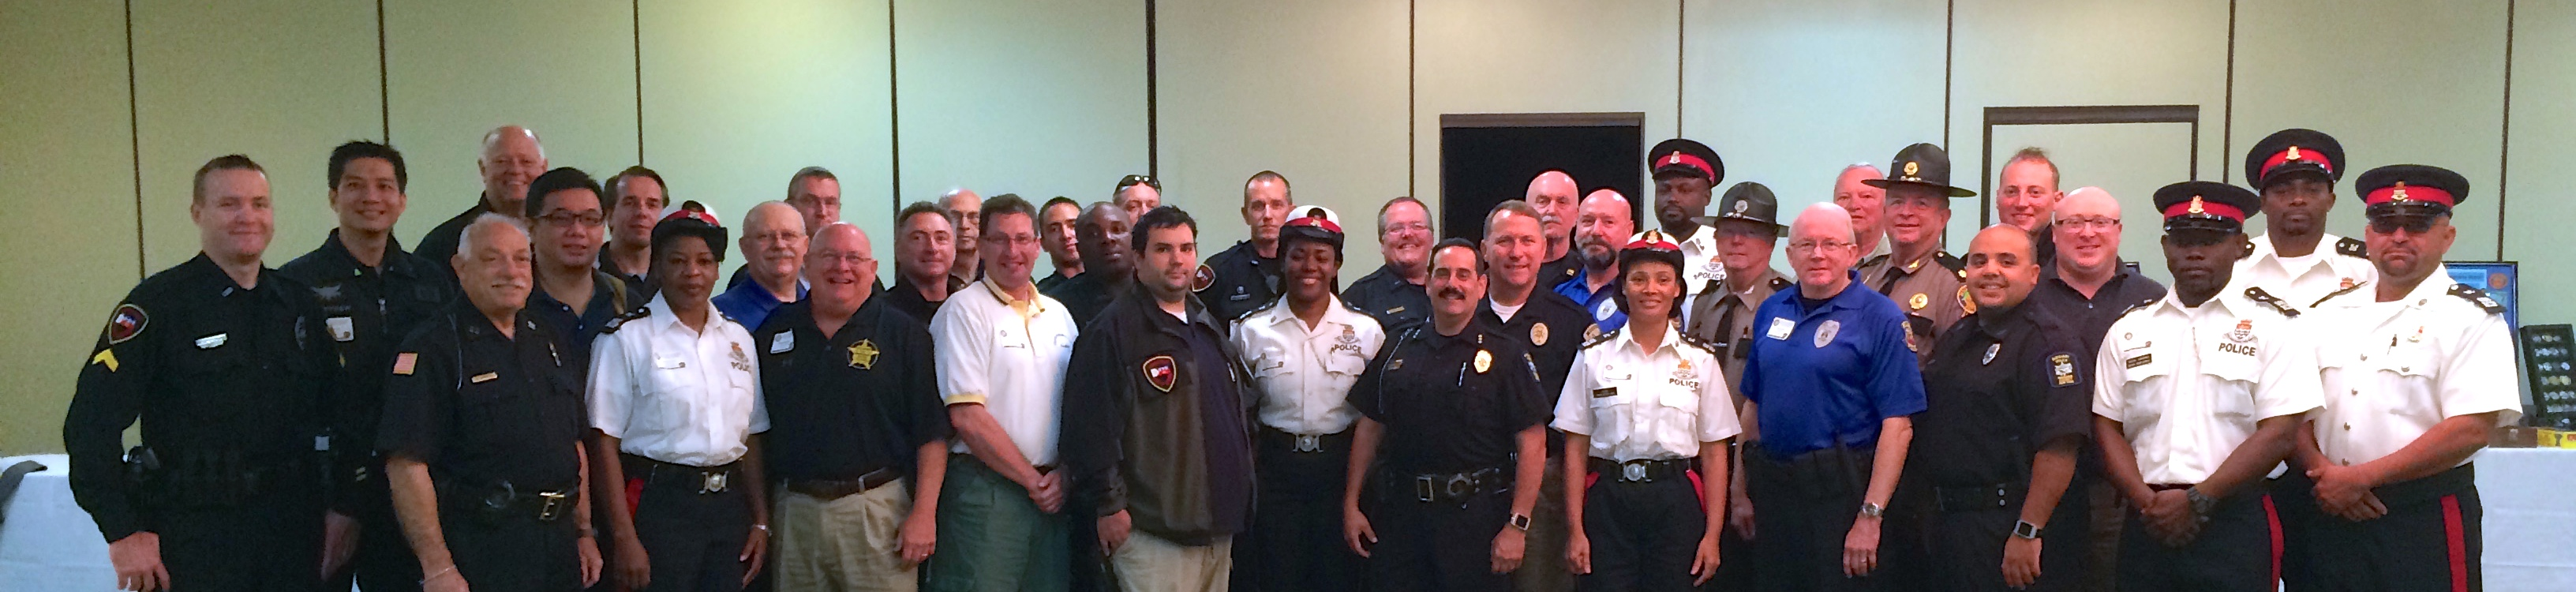 2014 Reserve Law Enforcement Conference attendees